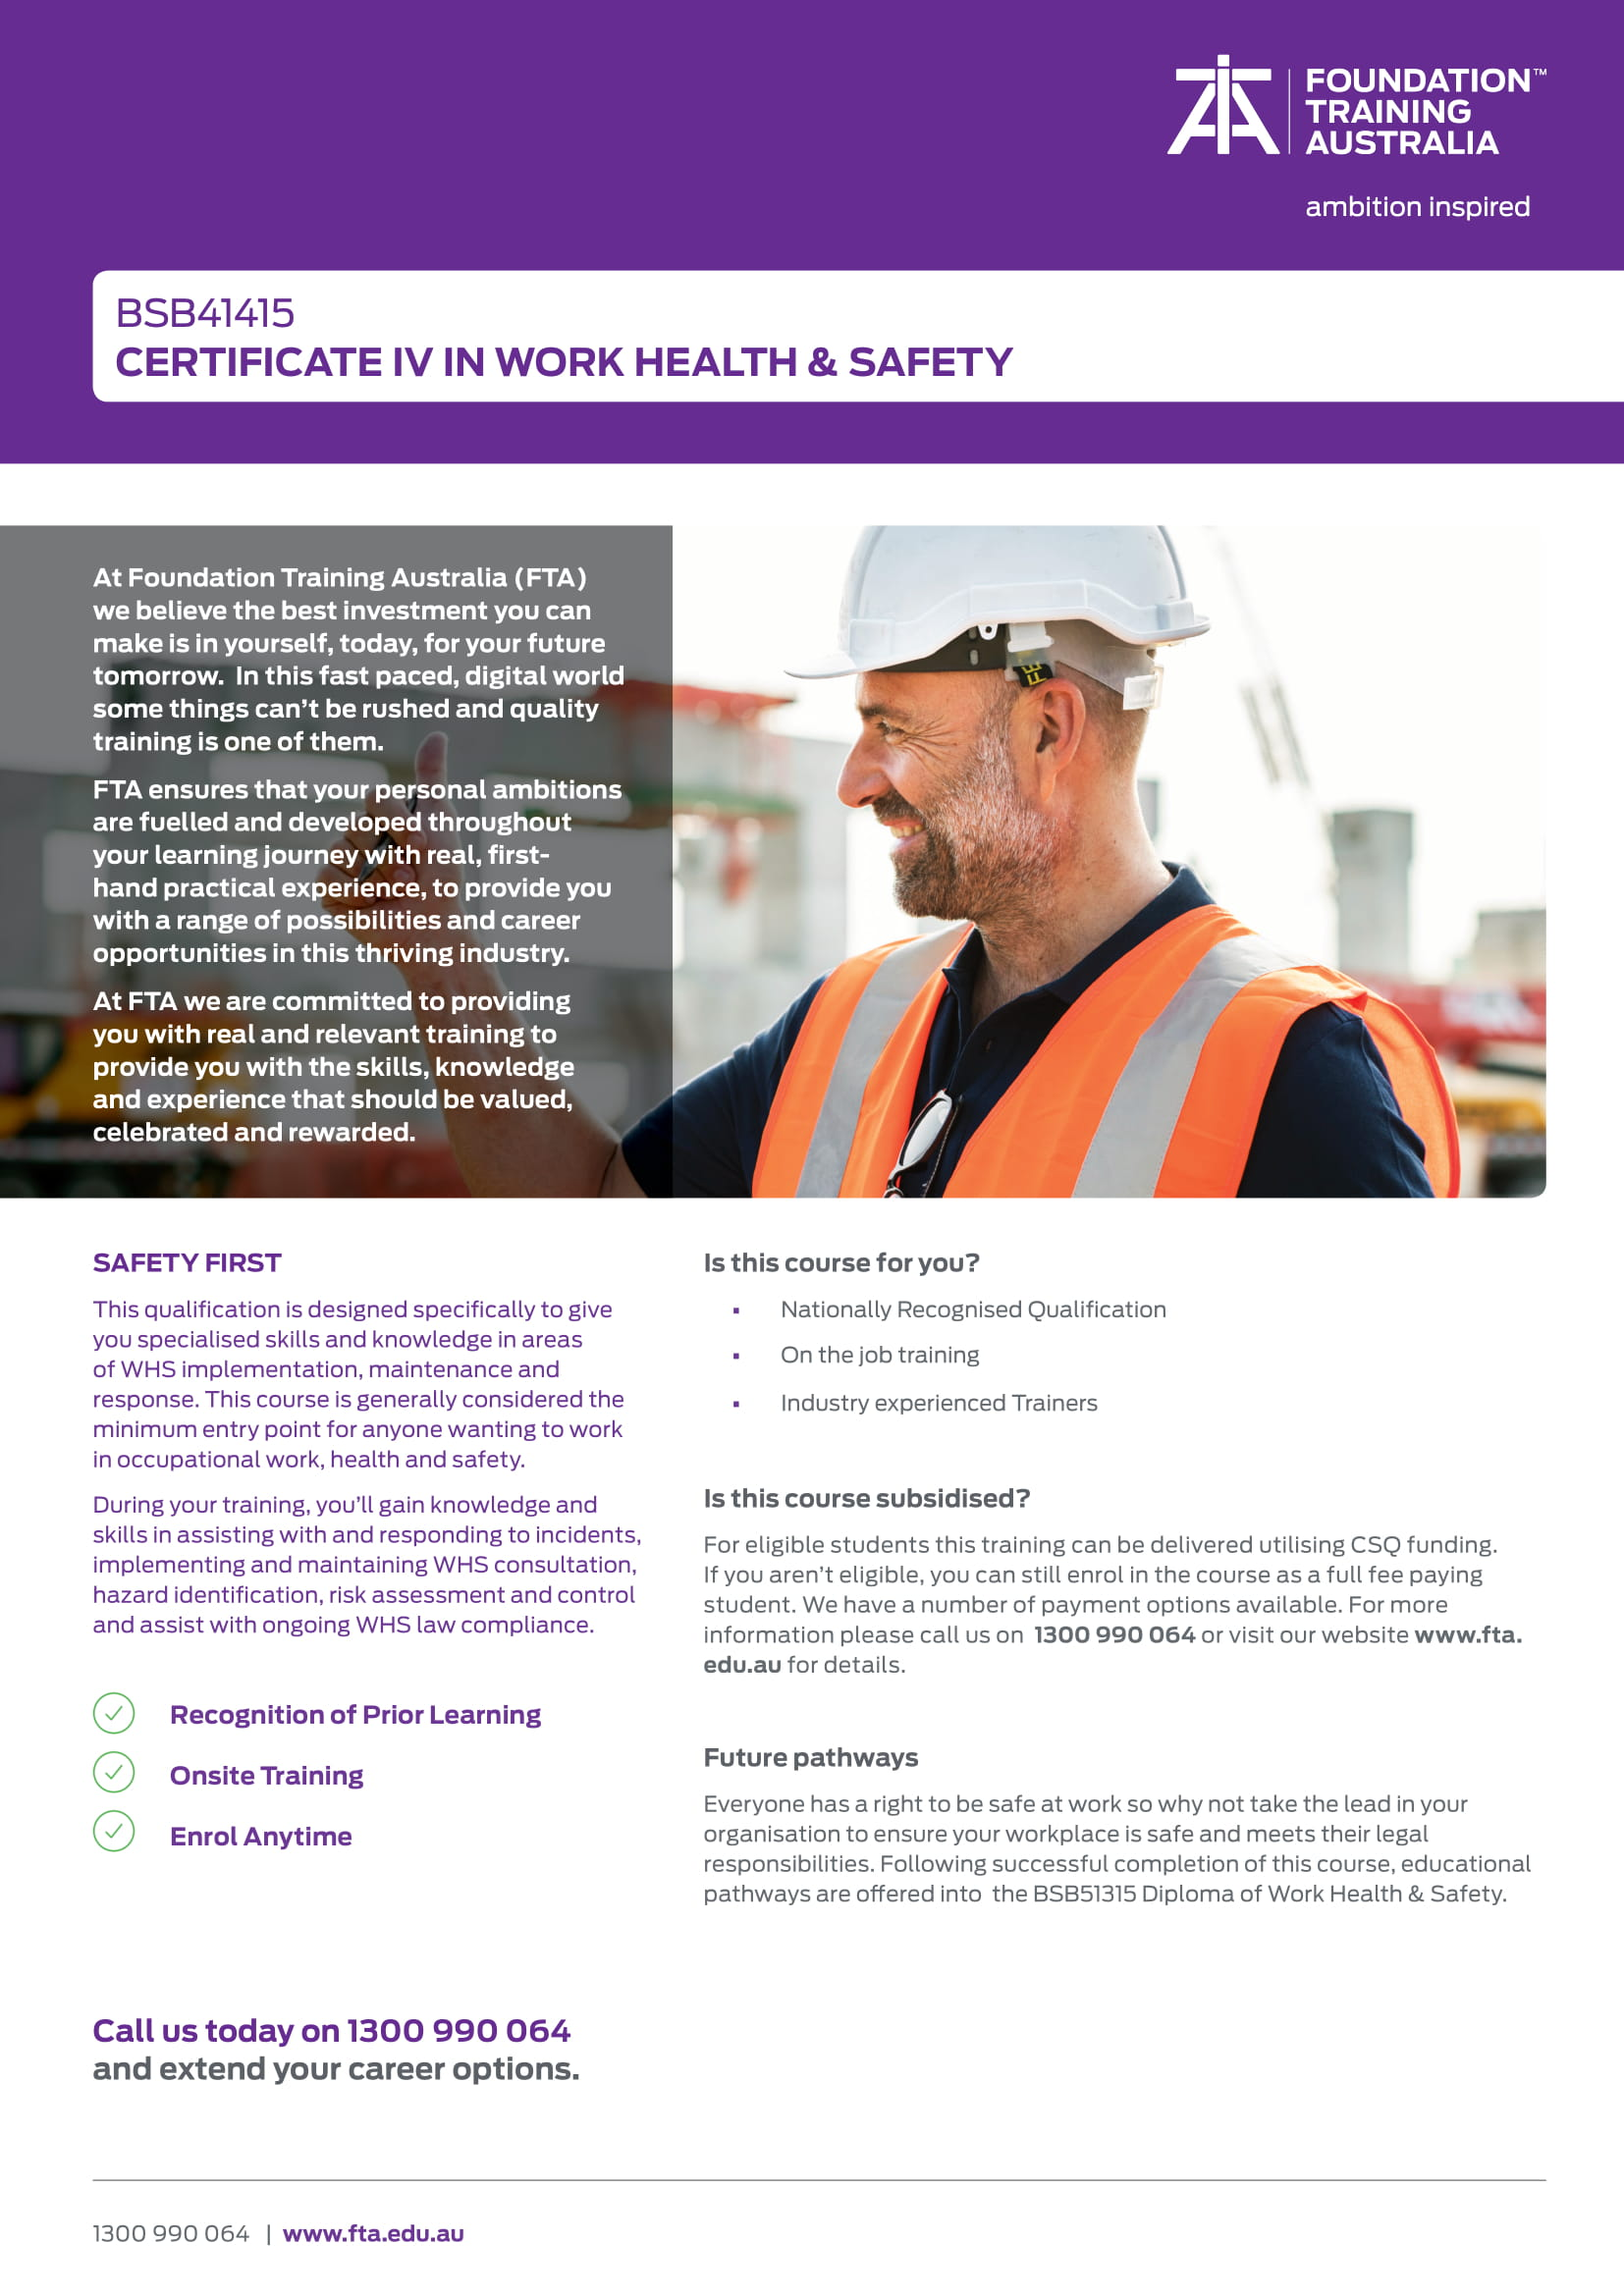 https://www.fta.edu.au/wp-content/uploads/2020/06/TP1.MK_.106-Certificate-IV-in-Work-Health-_-Safety-BSB41415-1.jpg